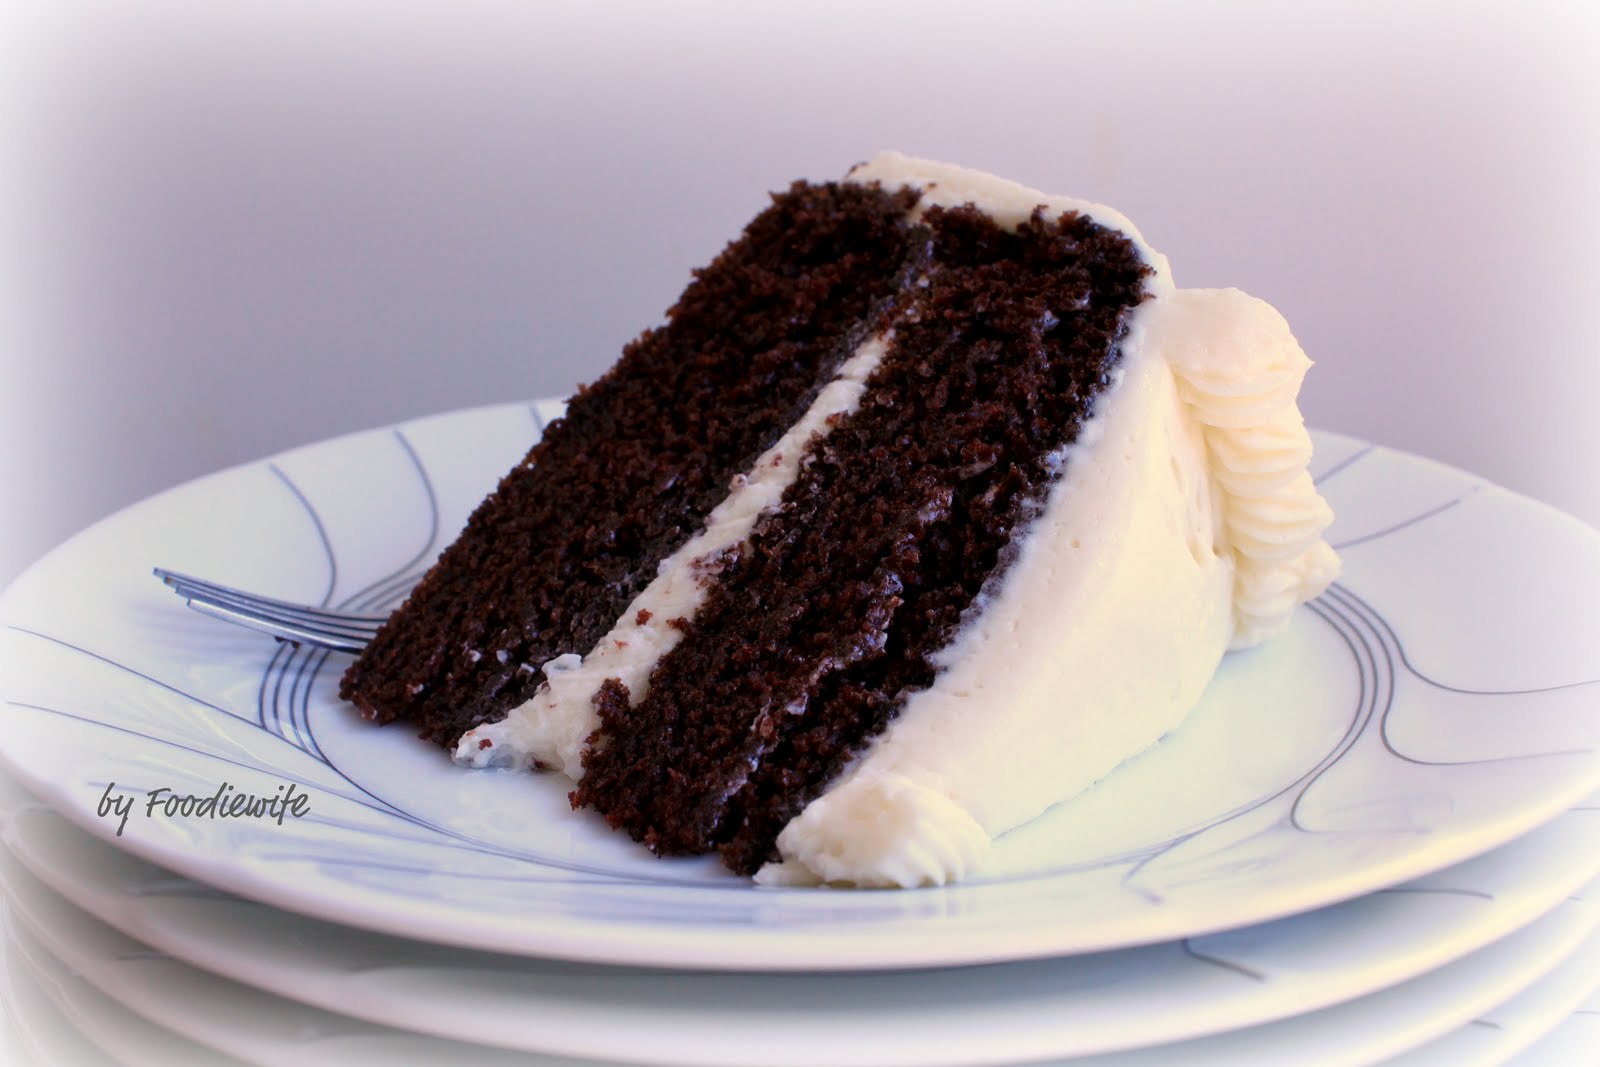 Best Cake Recipes For Icing: The Best Chocolate Cake With Old-Fashioned Cooked Vanilla